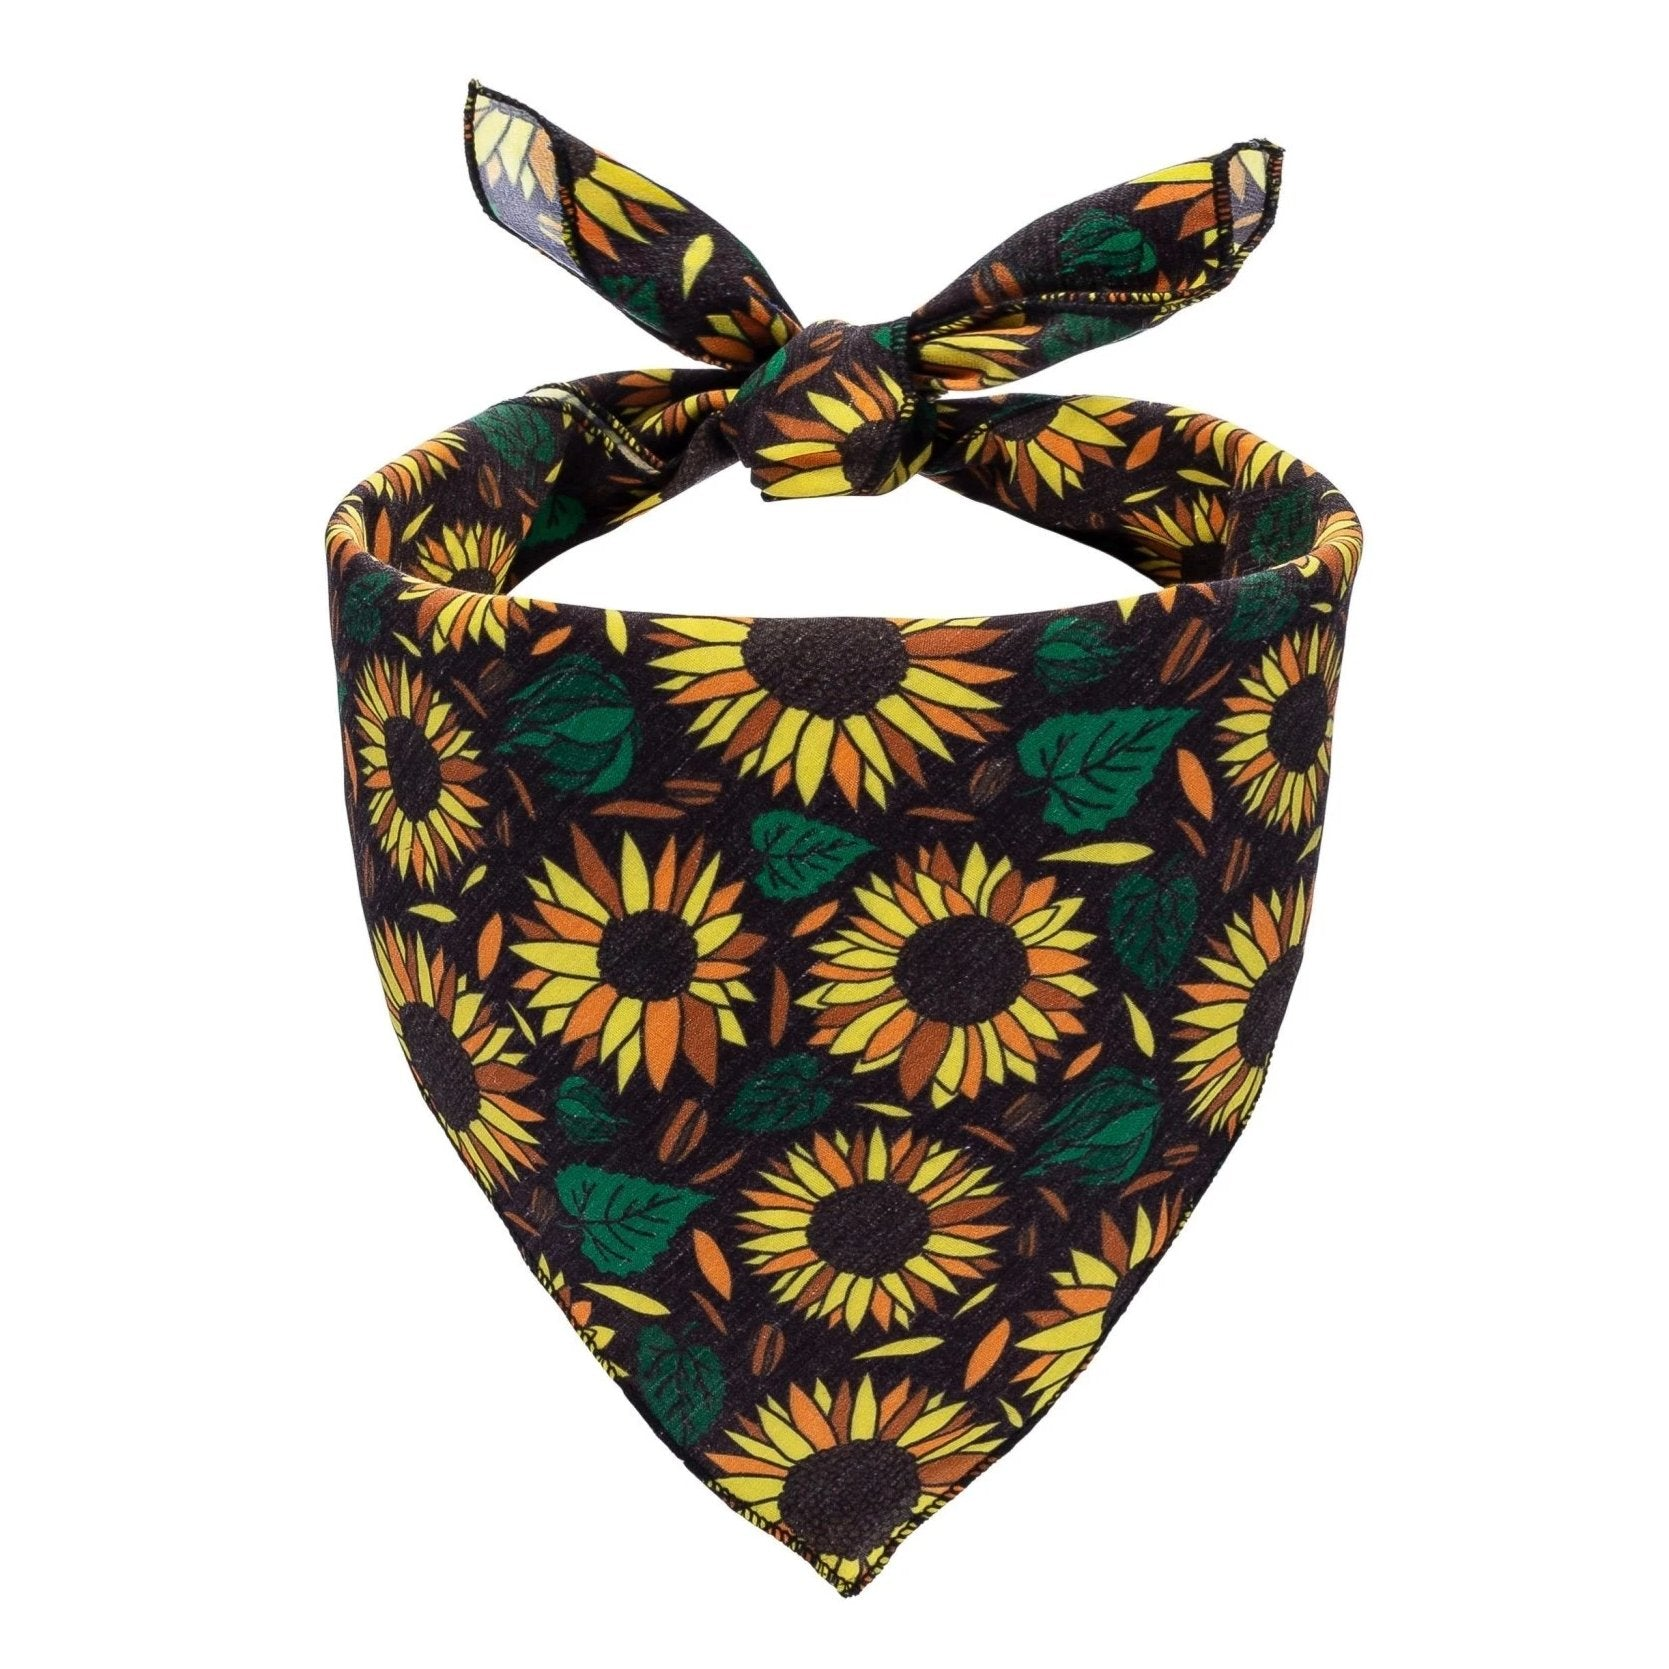 Sunflowers Dog Bandana - Canine Compassion Bandanas